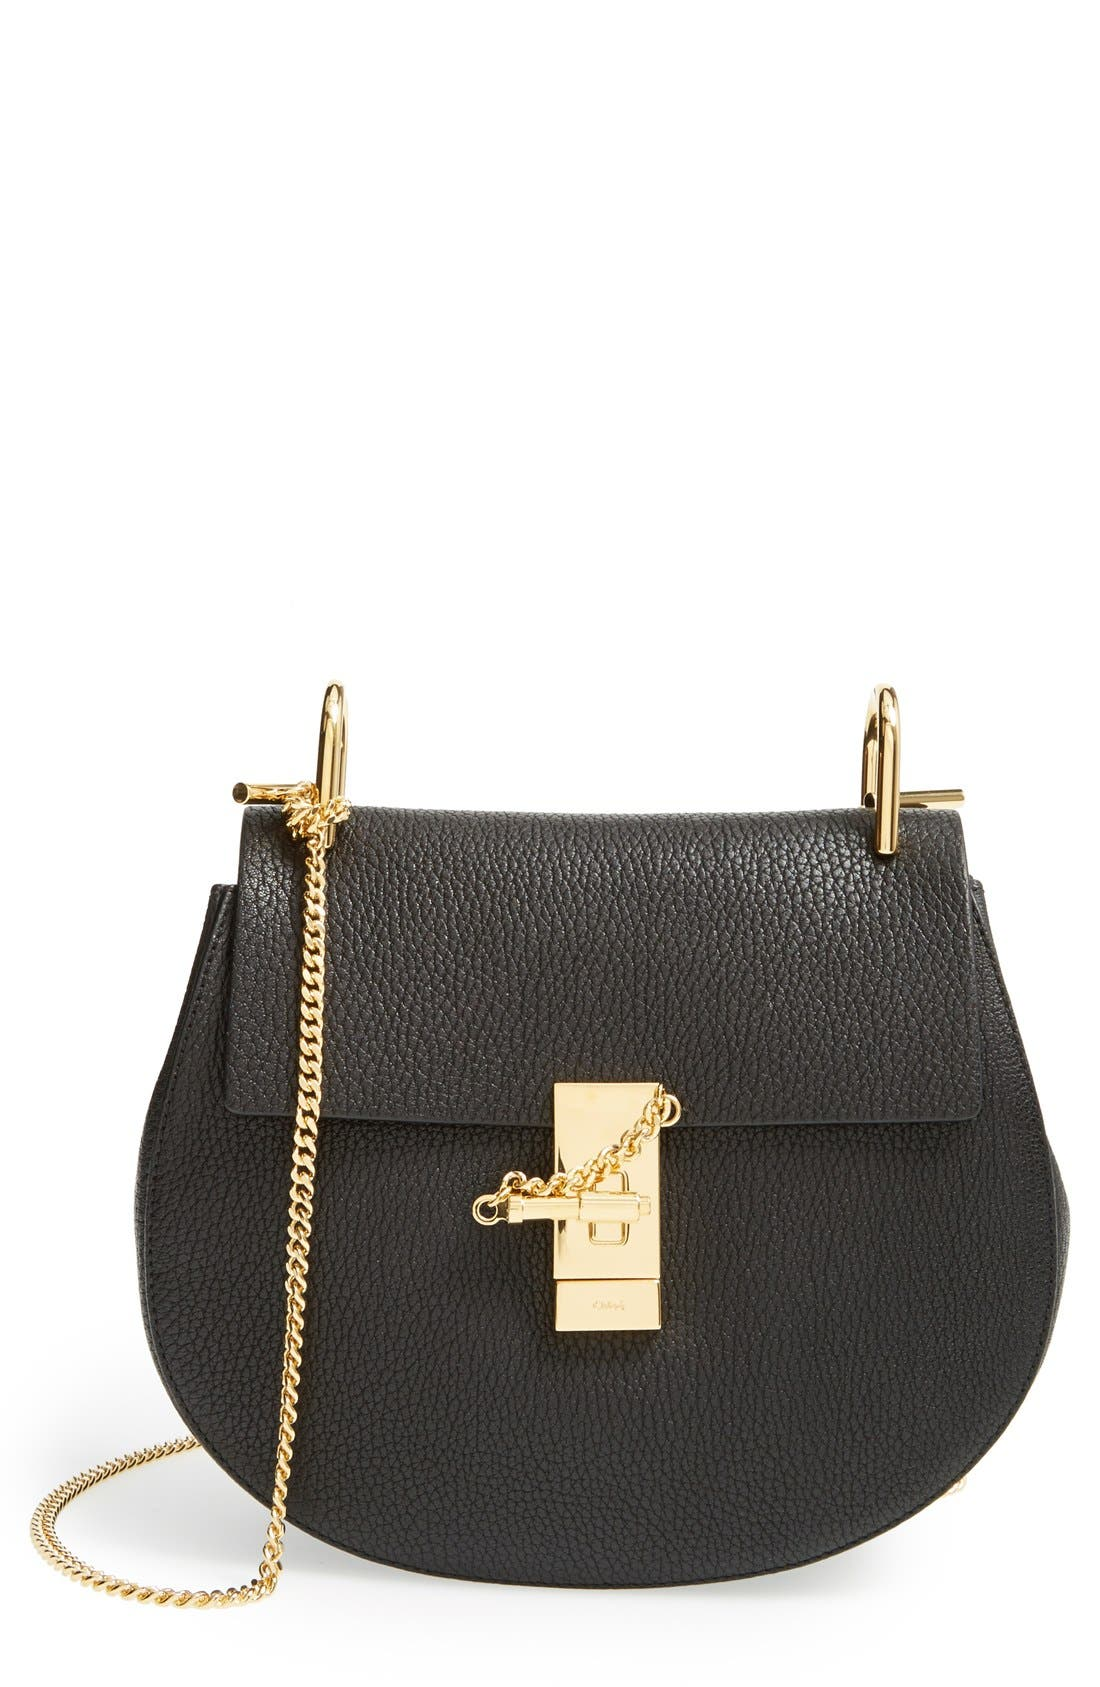 Alternate Image 1 Selected - Chloé Drew Leather Shoulder Bag